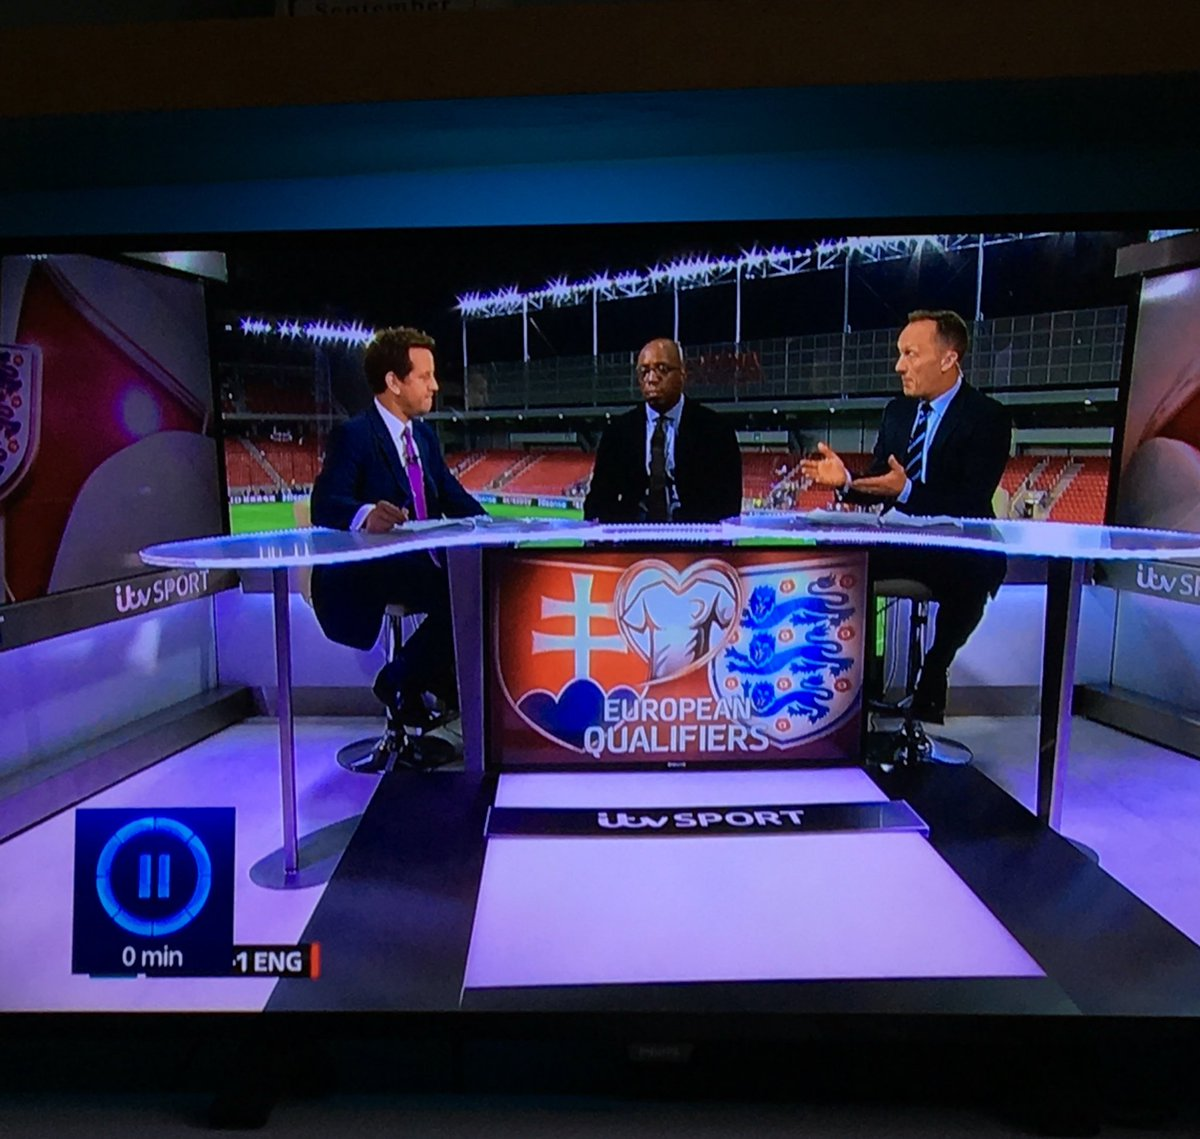 European Qualifiers written on the desk... Are these not the #WorldCupQualifiers @ITV ? #England https://t.co/c3CnNodwBt